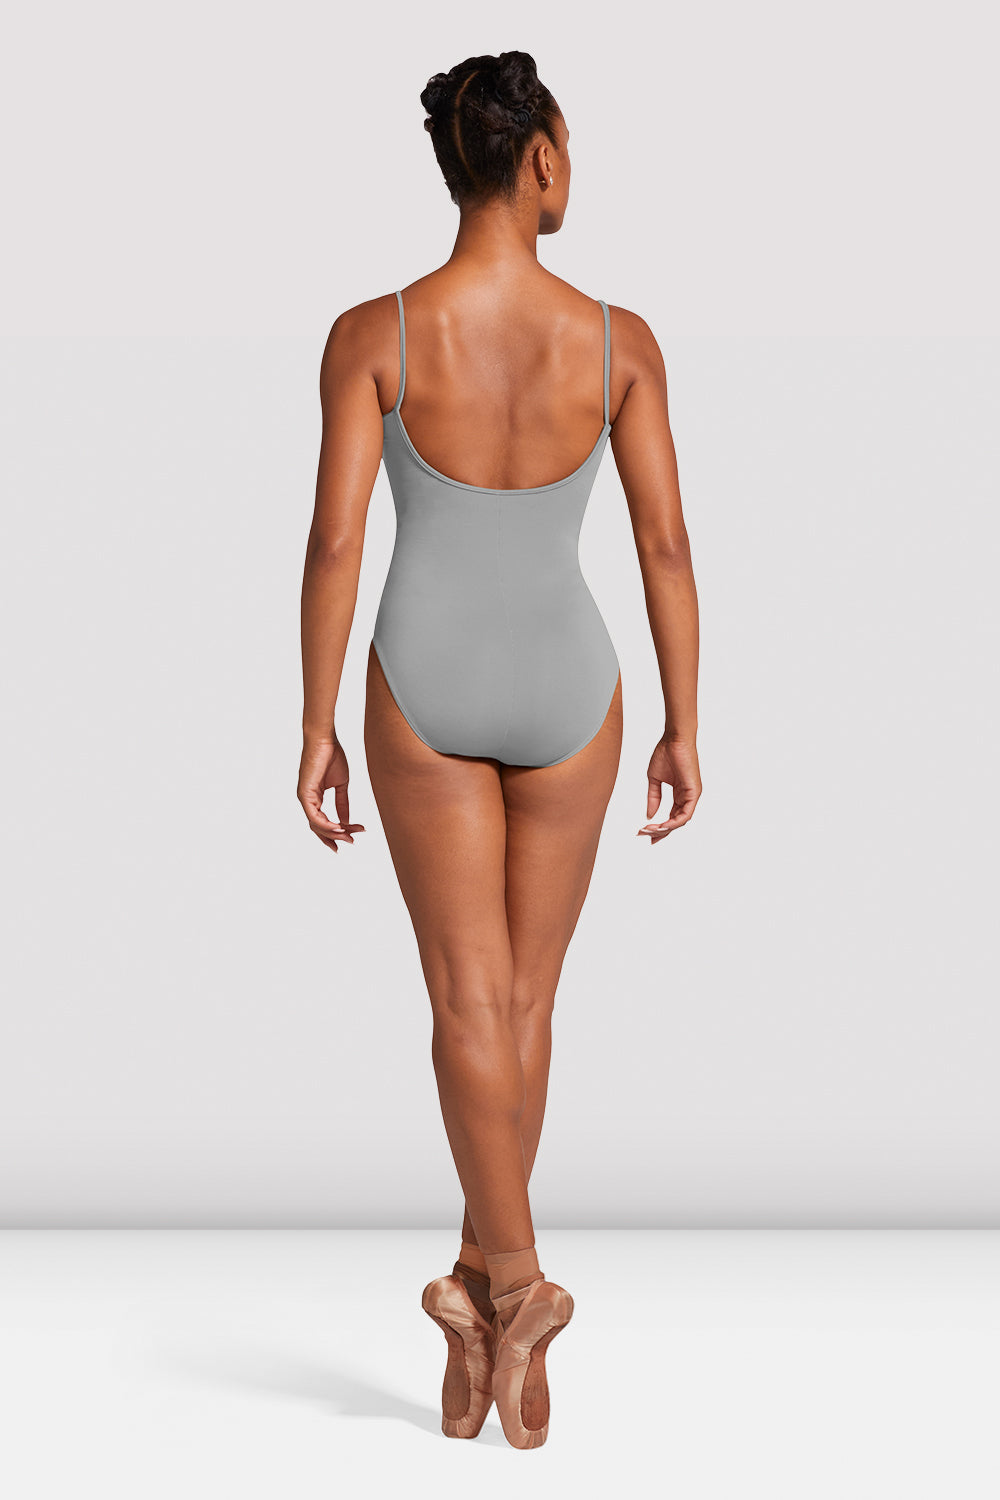 Ladies Nejor Camisole Leotard - BLOCH US